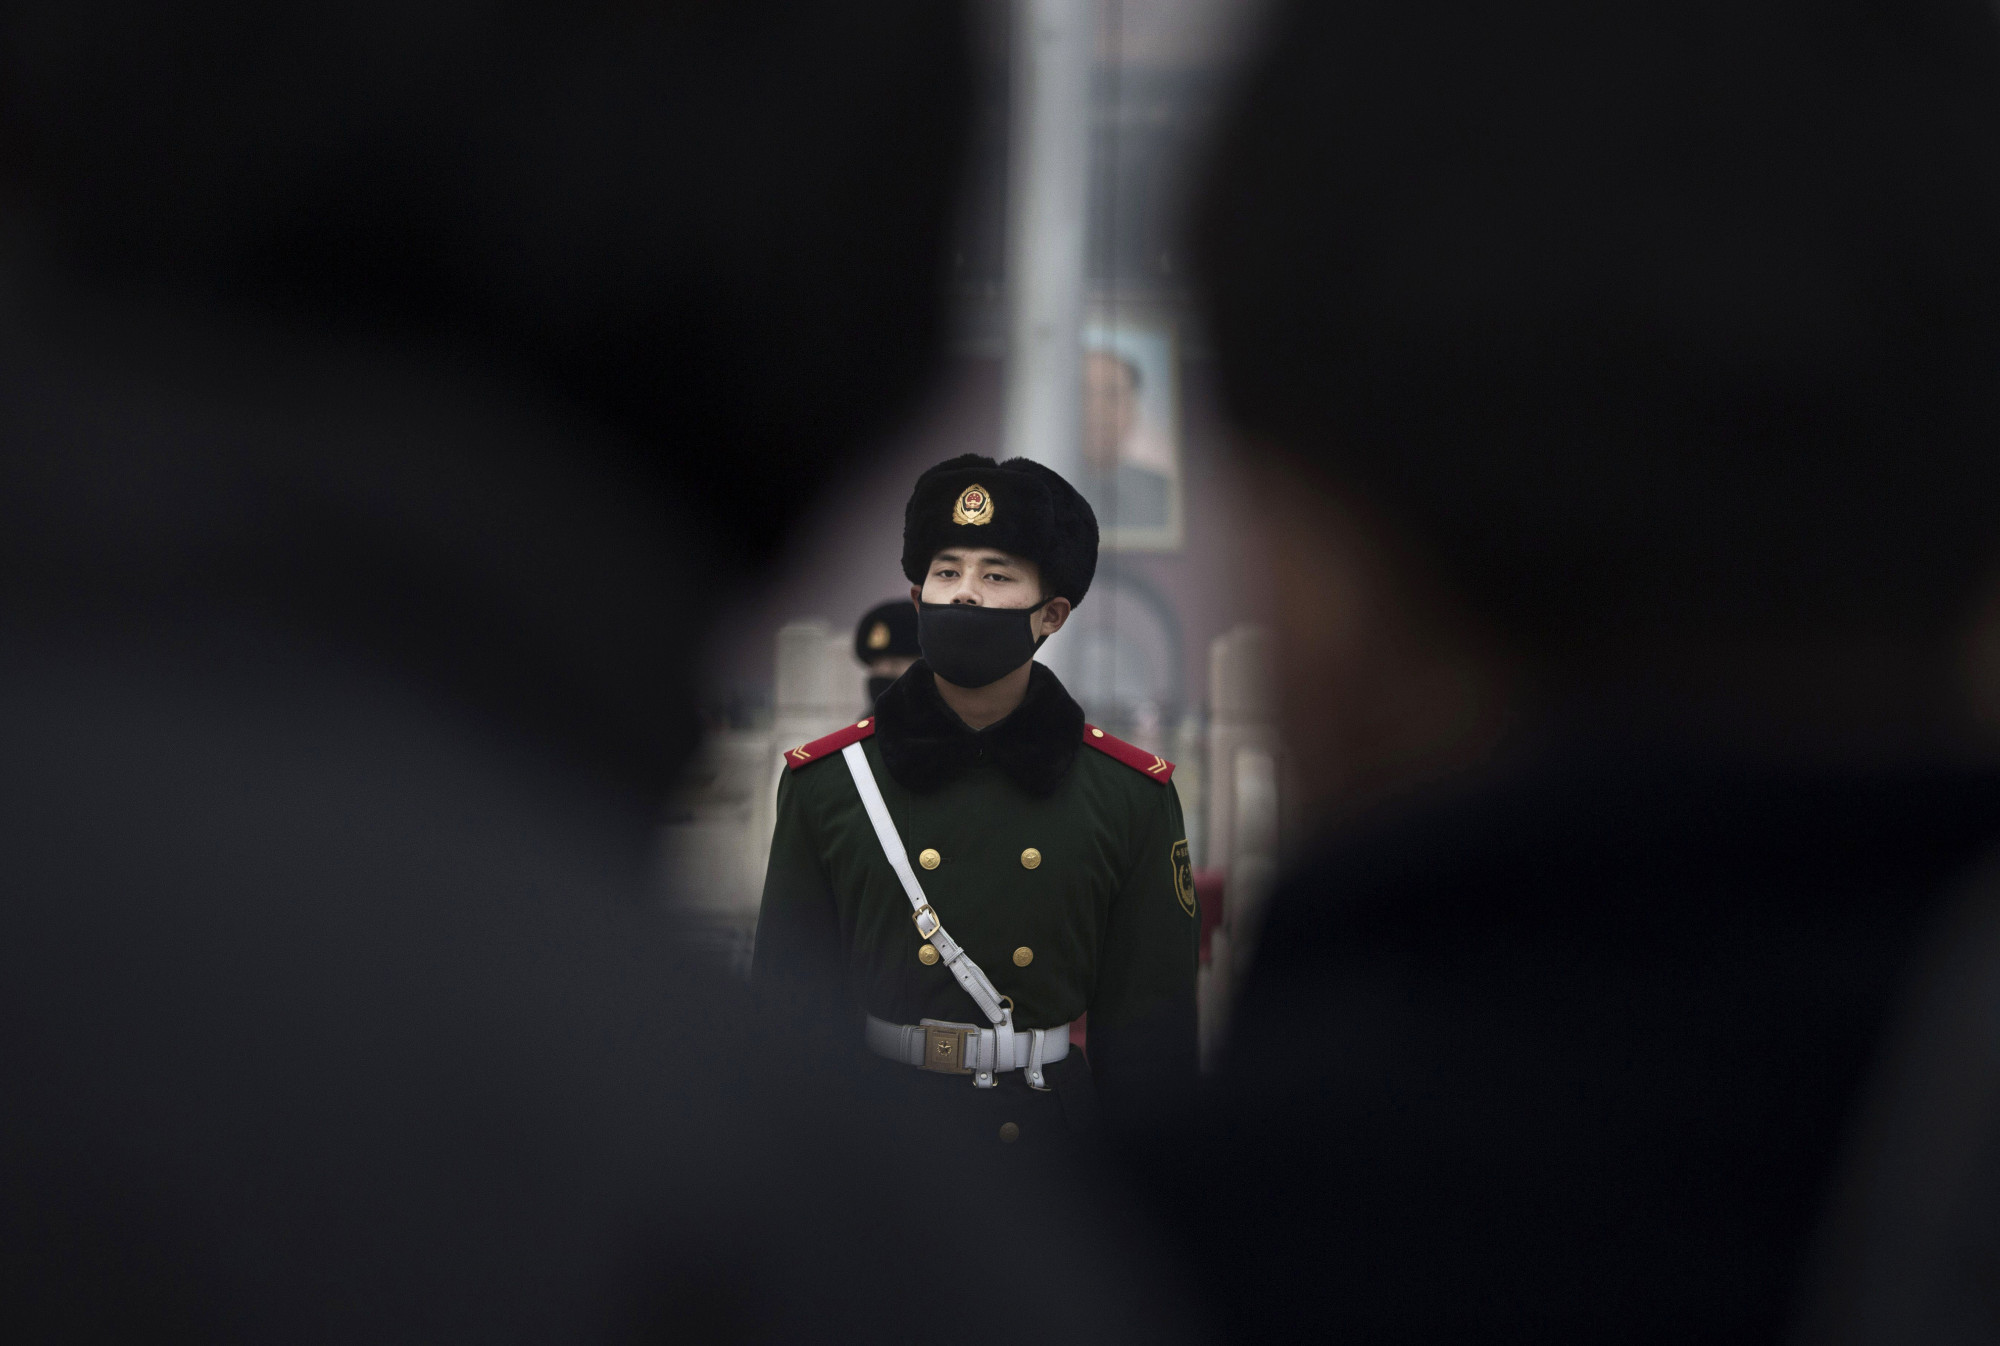 Leaked Documents: China's Lab Biosafety Concerns Point to Beijing's Cover-up of CCP Virus